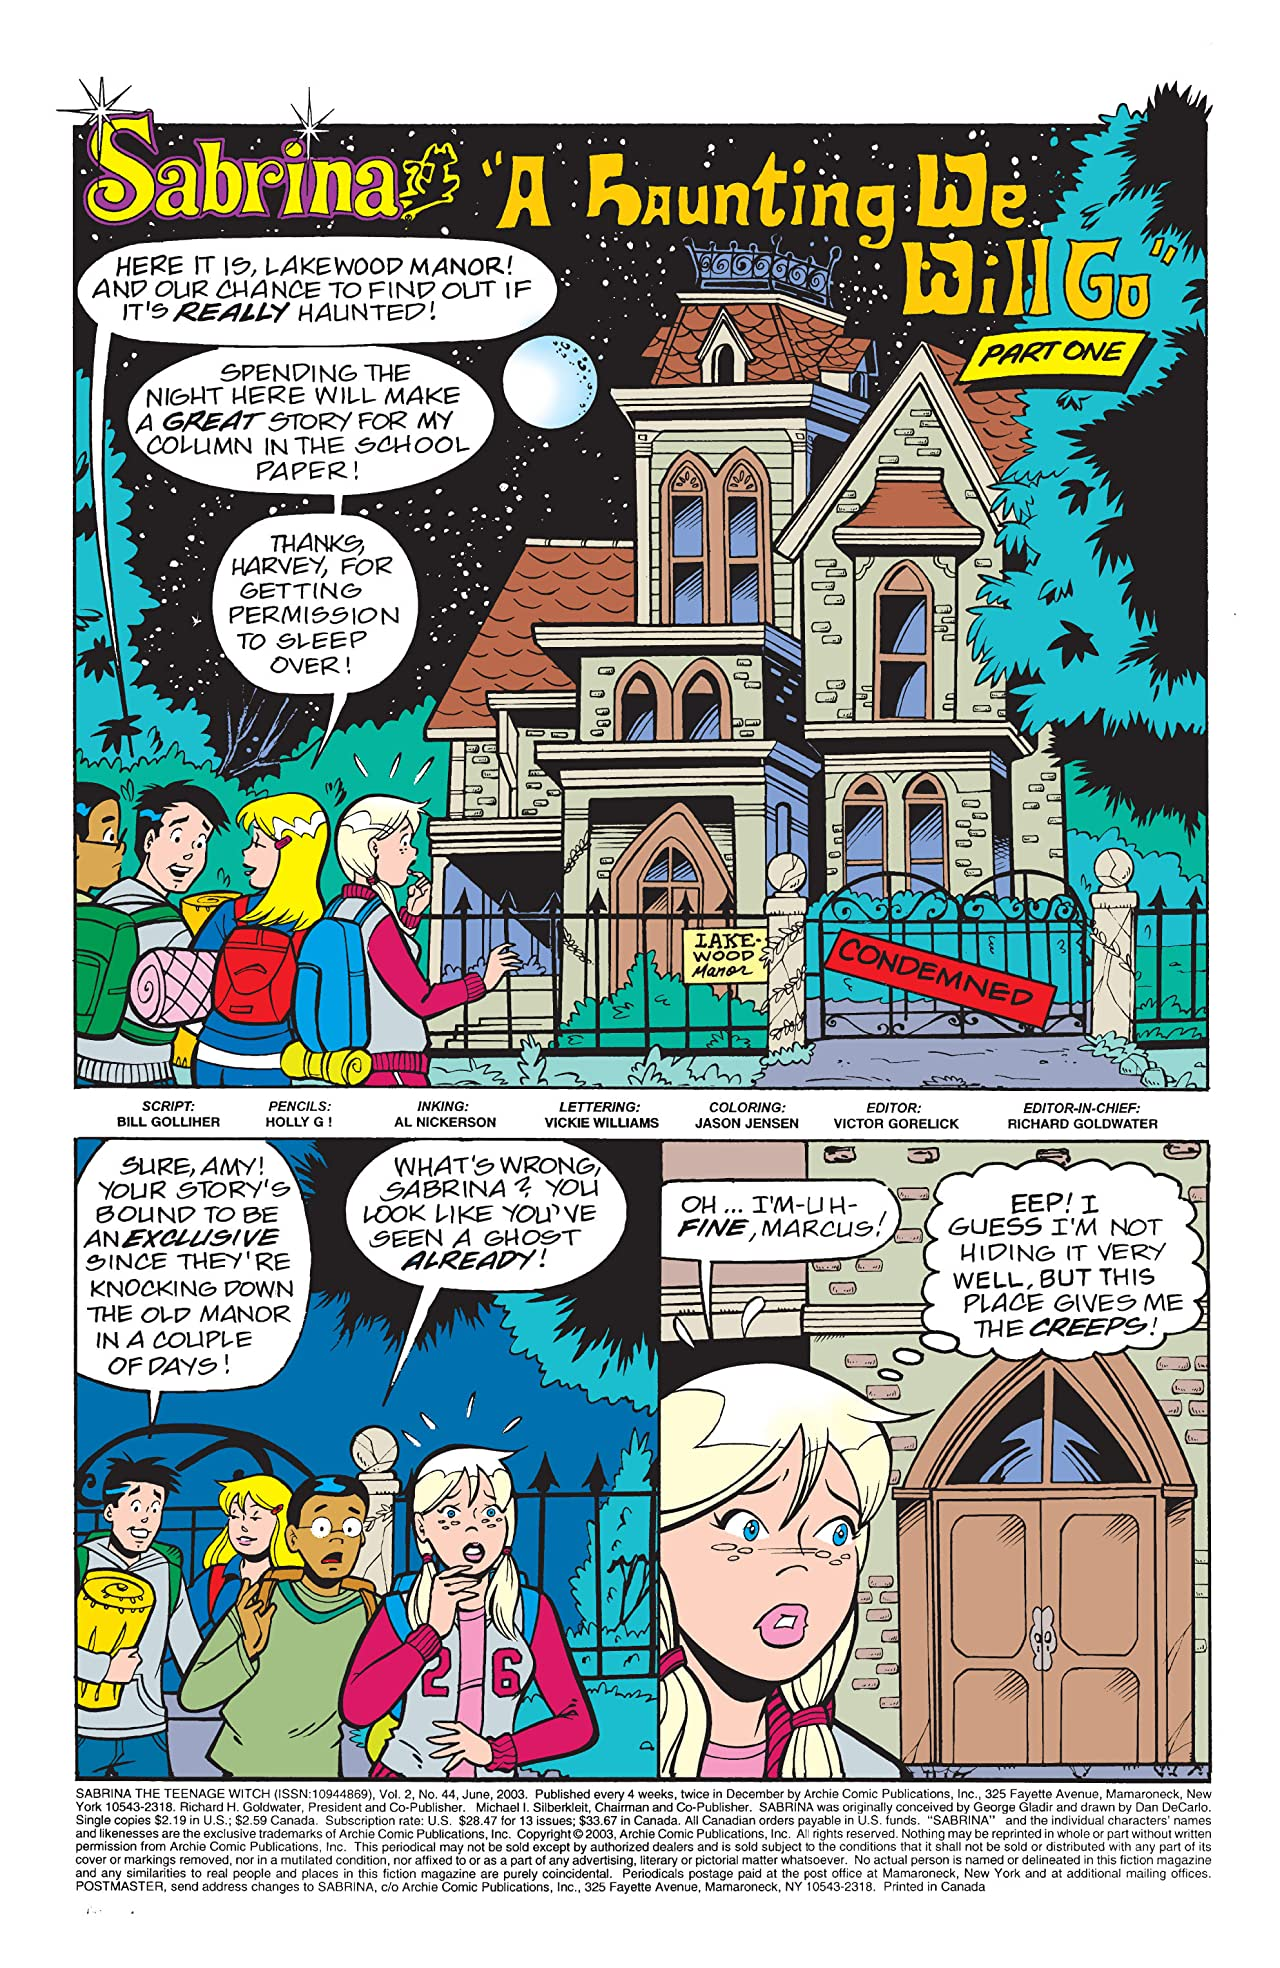 Sabrina the Teenage Witch #44